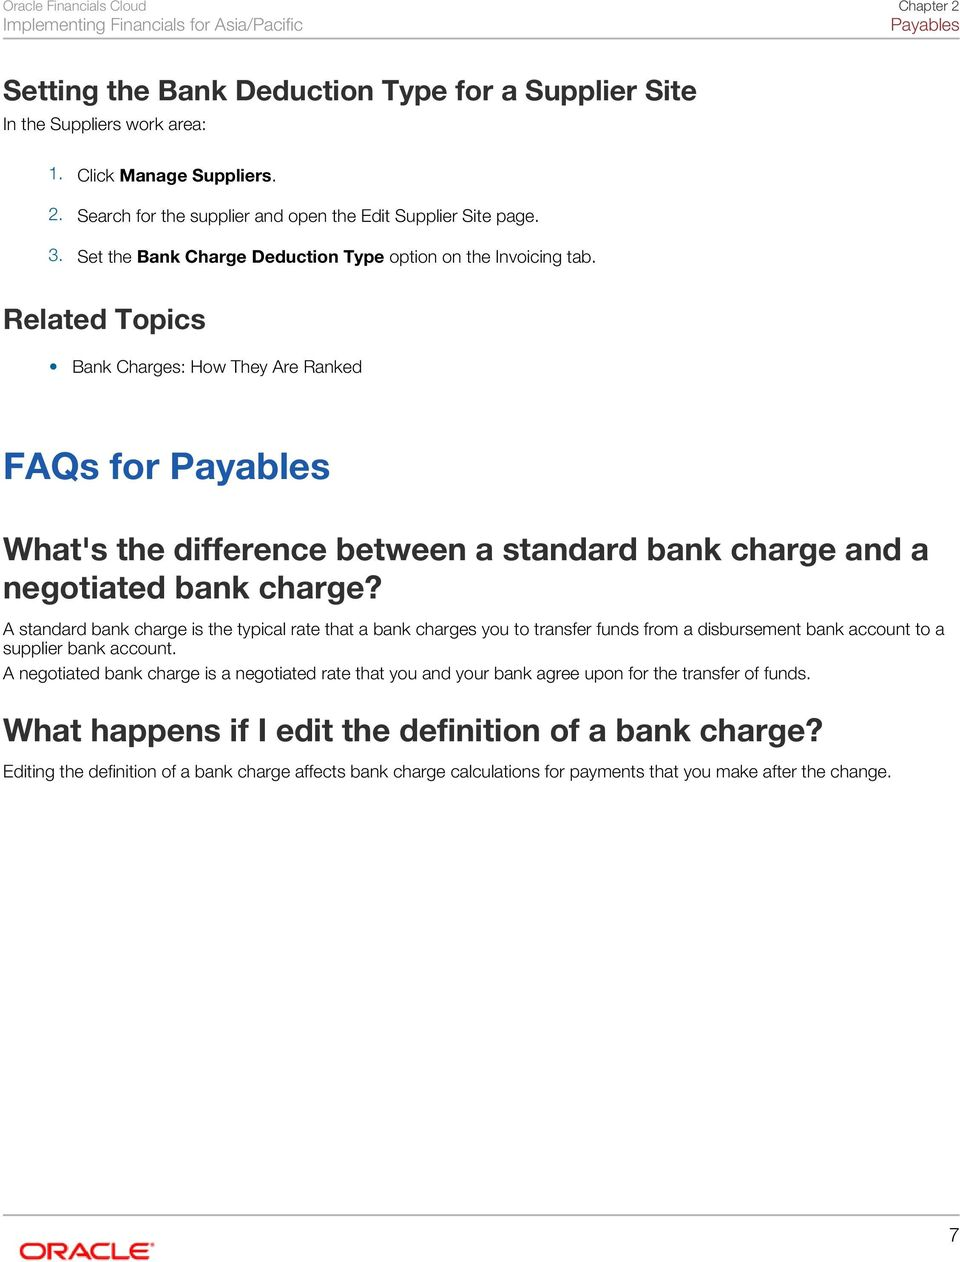 Related Topics Bank Charges: How They Are Ranked FAQs for Payables What's the difference between a standard bank charge and a negotiated bank charge?